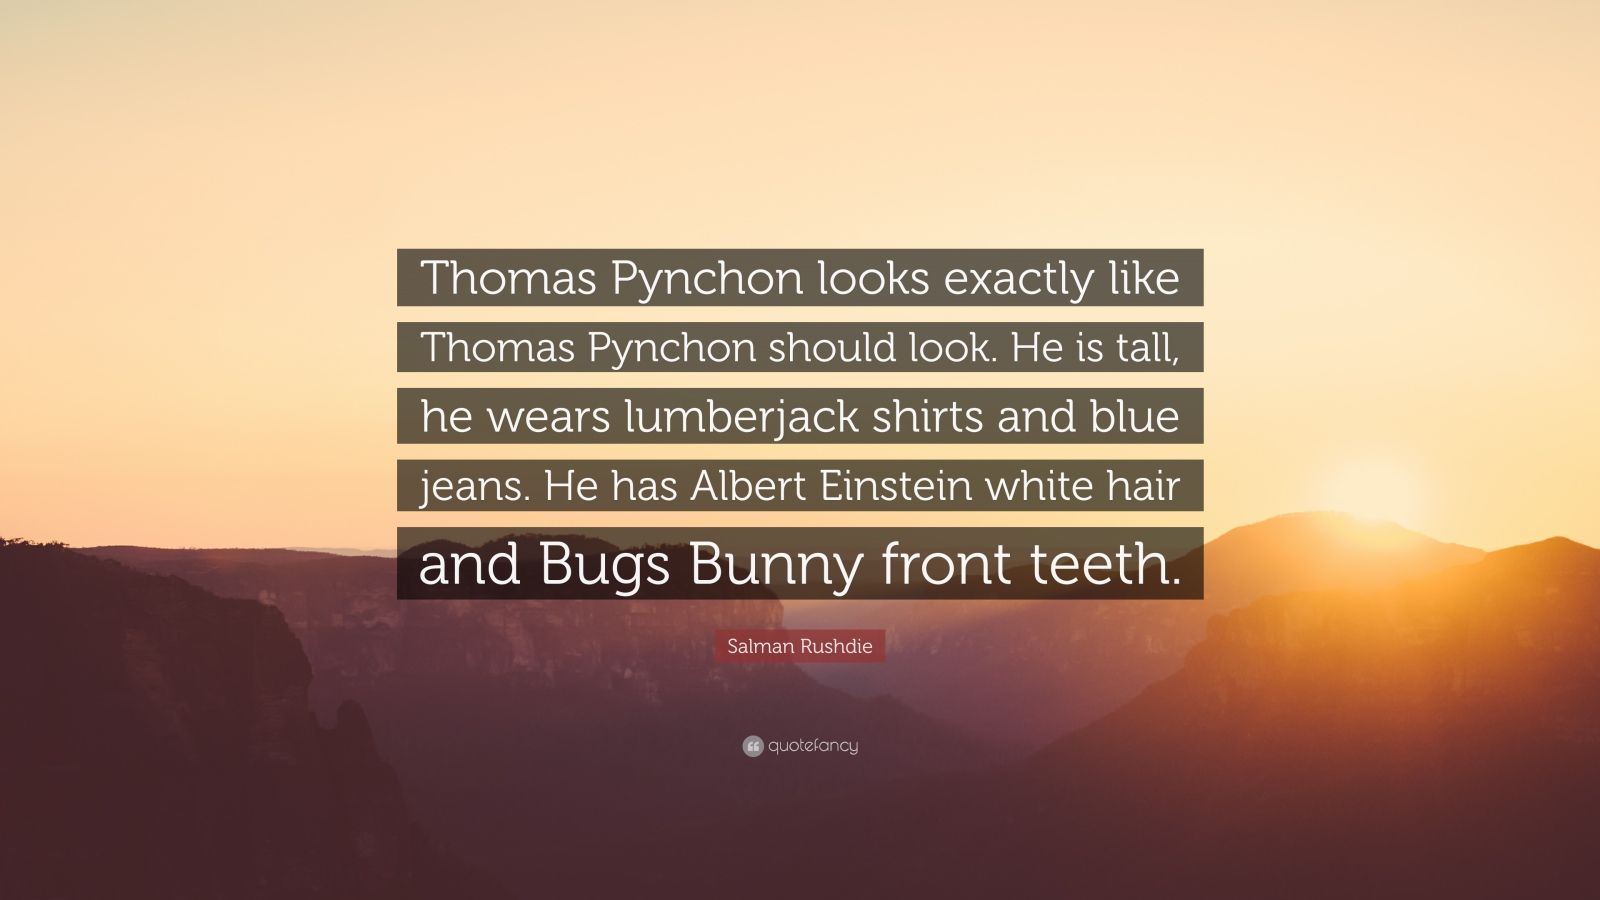 "Salman Rushdie Quote: ""Thomas Pynchon looks exactly like Thomas Pynchon should look. He is tall, he wears lumberjack shirts and blue jeans. He has Albert Einstein white hair and Bugs Bunny front teeth."""